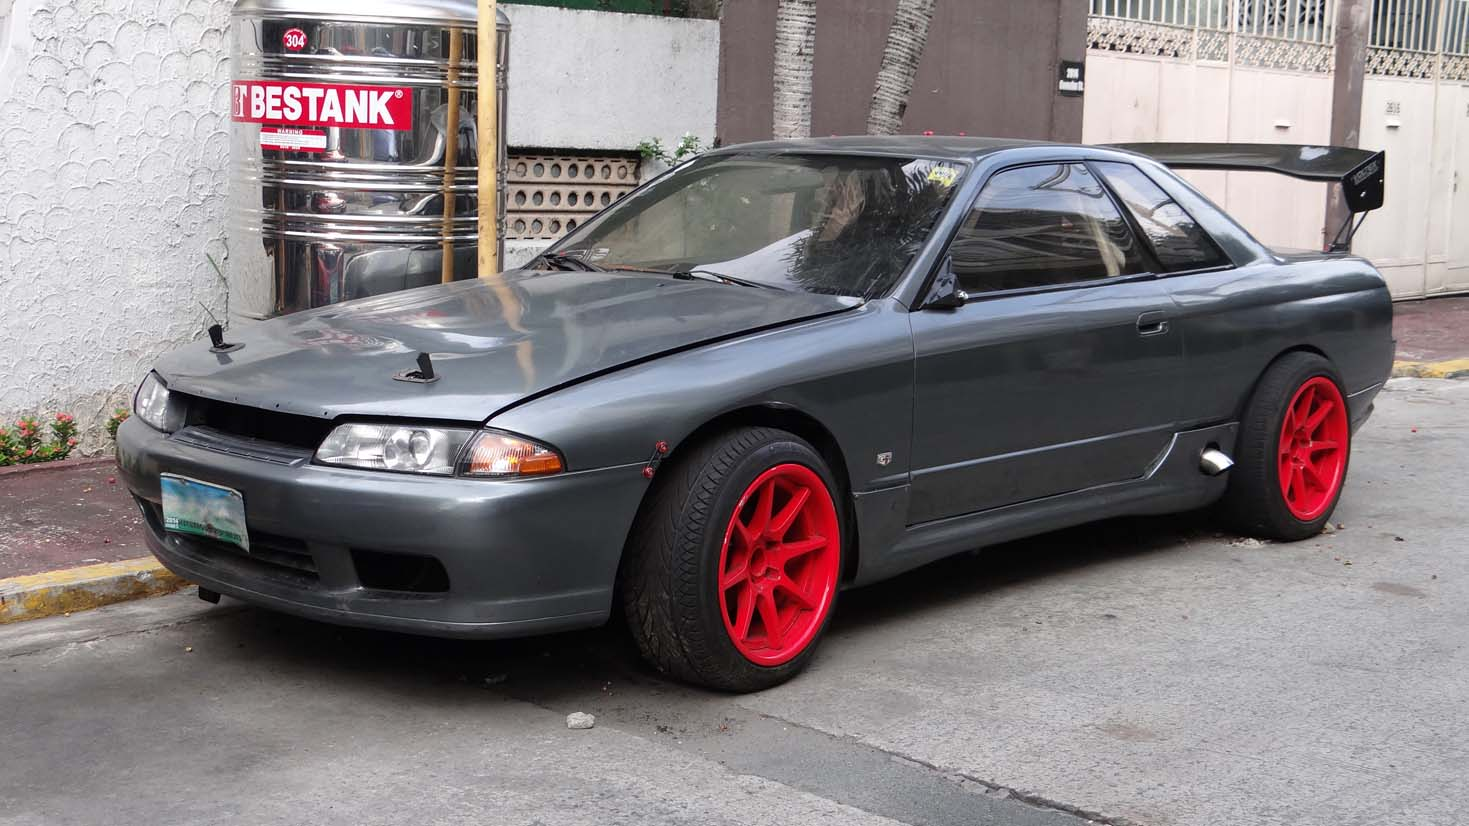 R32 Gtr For Sale Philippines >> Back From The Far East 23gt